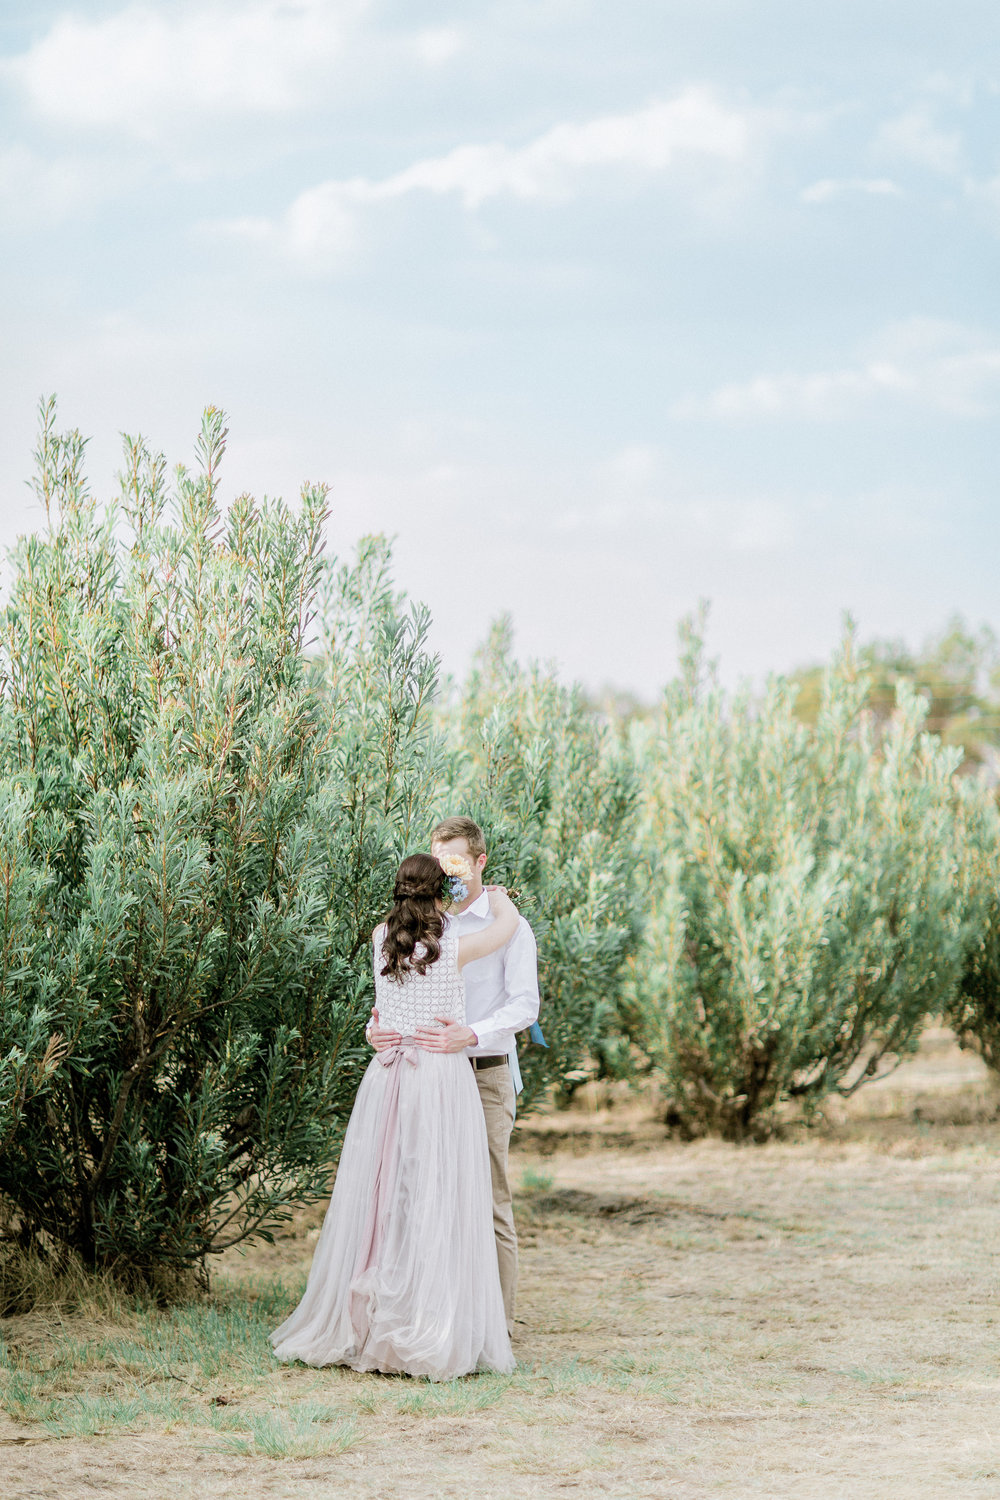 South africa wedding photographer clareece smit photography18.jpg